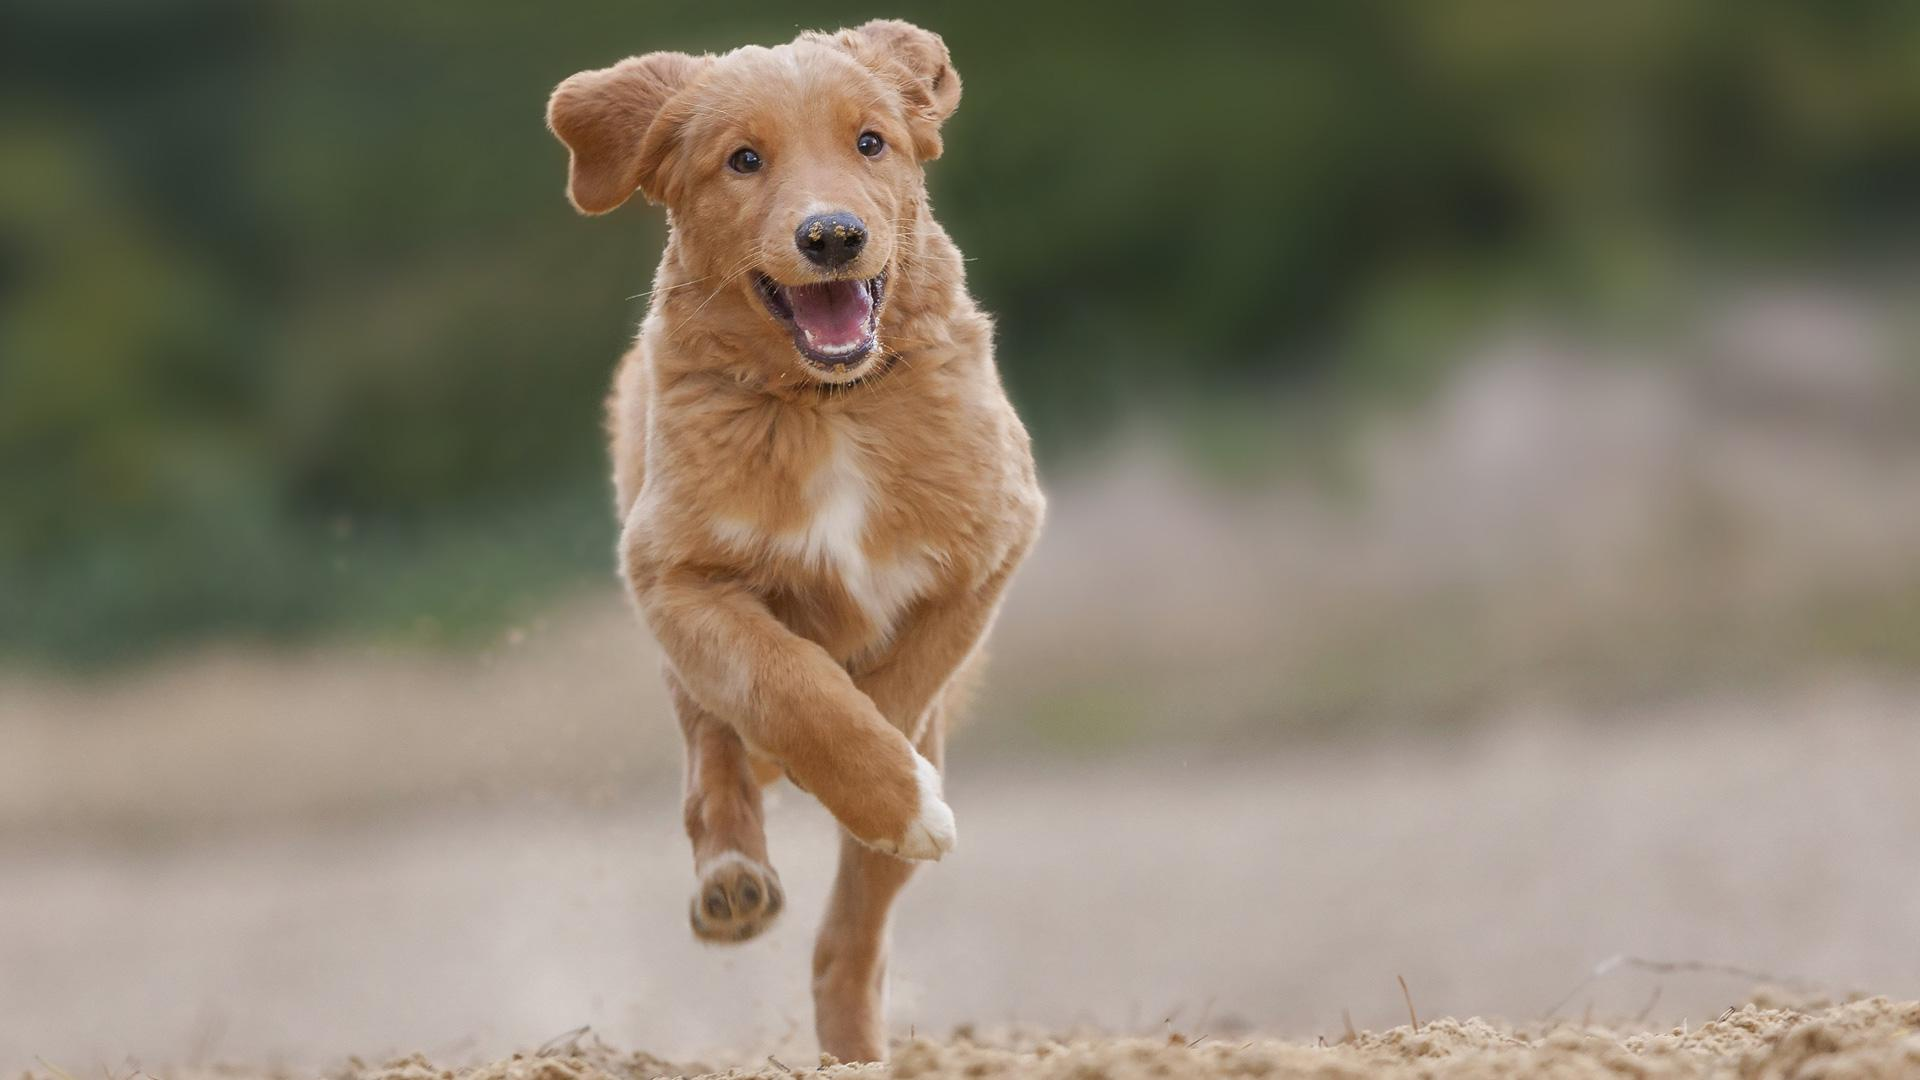 Meet the breed: Nova Scotia Duck Tolling Retriever